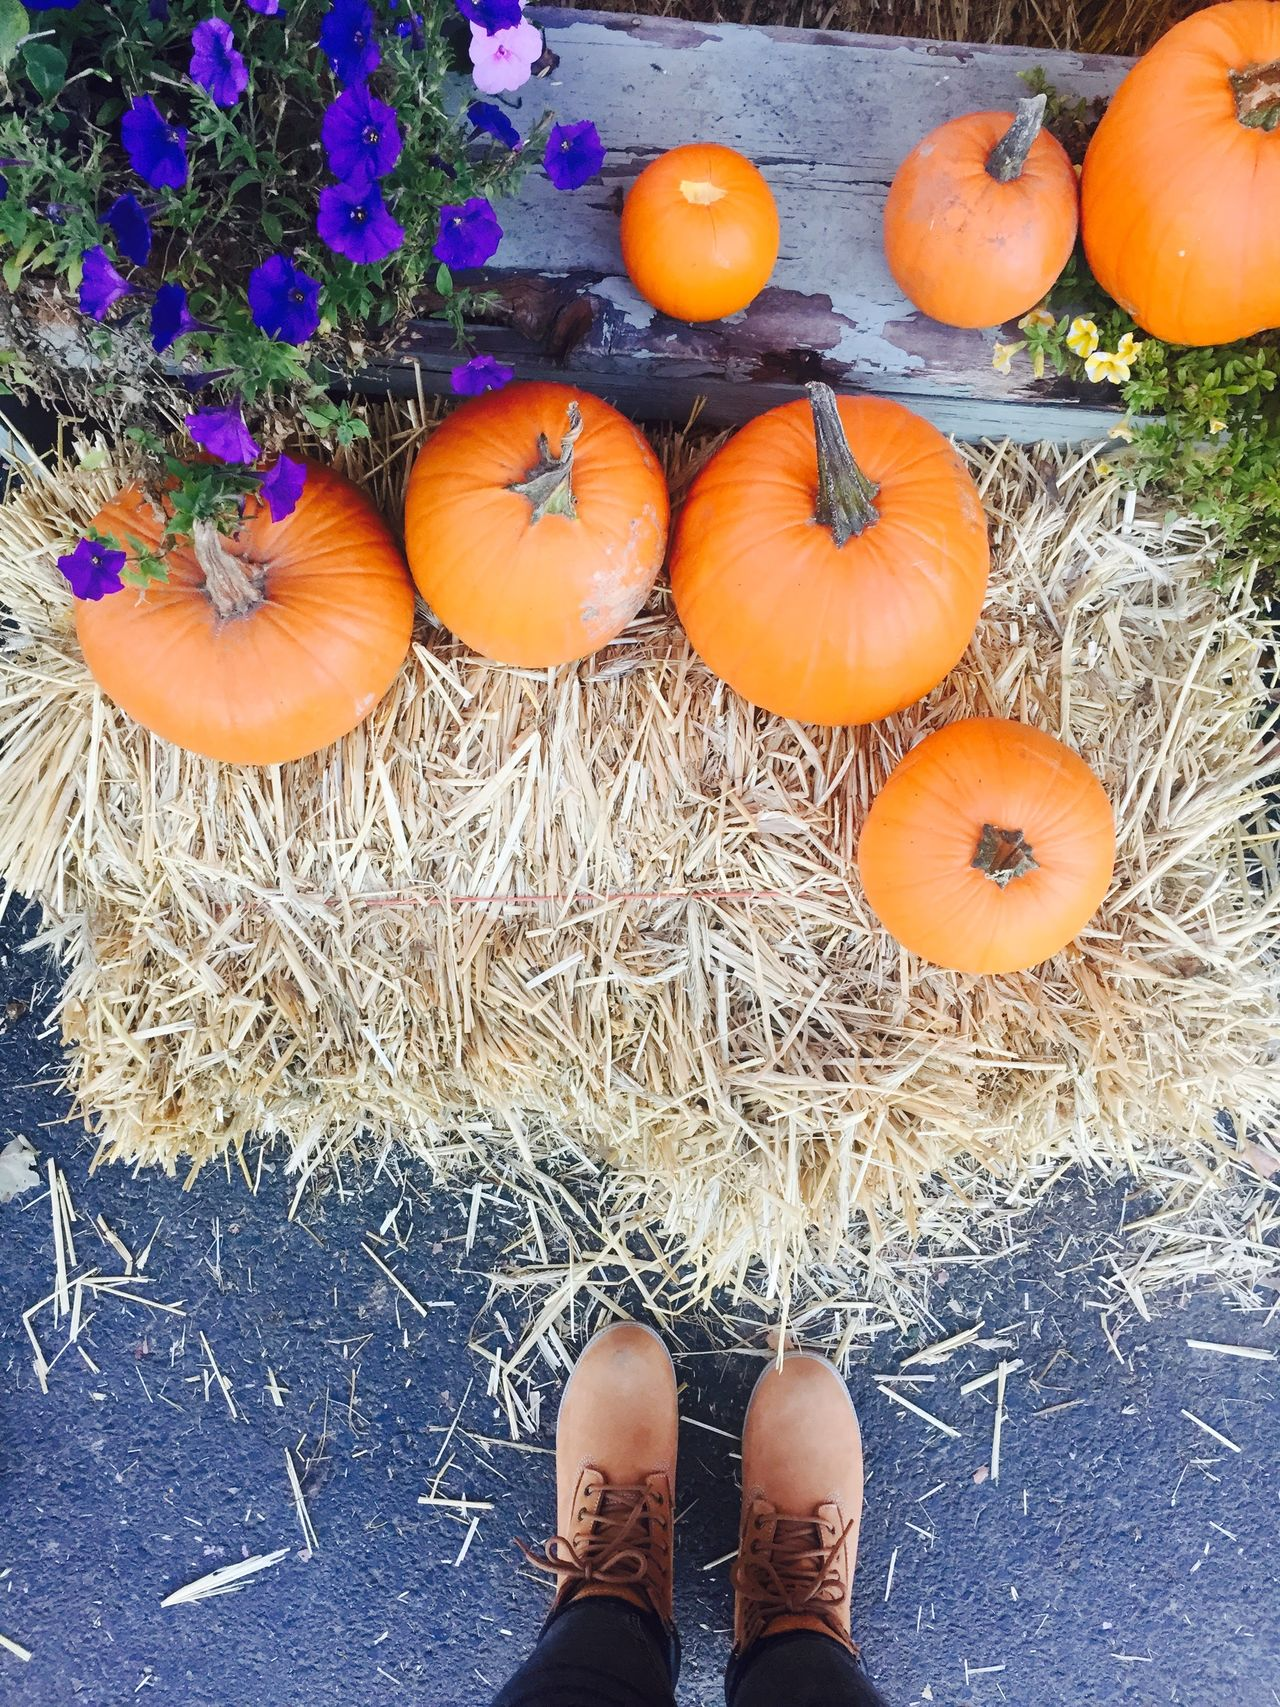 Adult Adults Only Autumn Day Fall Freshness Haystack High Angle View Human Body Part Leaves Low Section One Person Outdoors Pumpkin Pumpkin Patch Real People Shoe